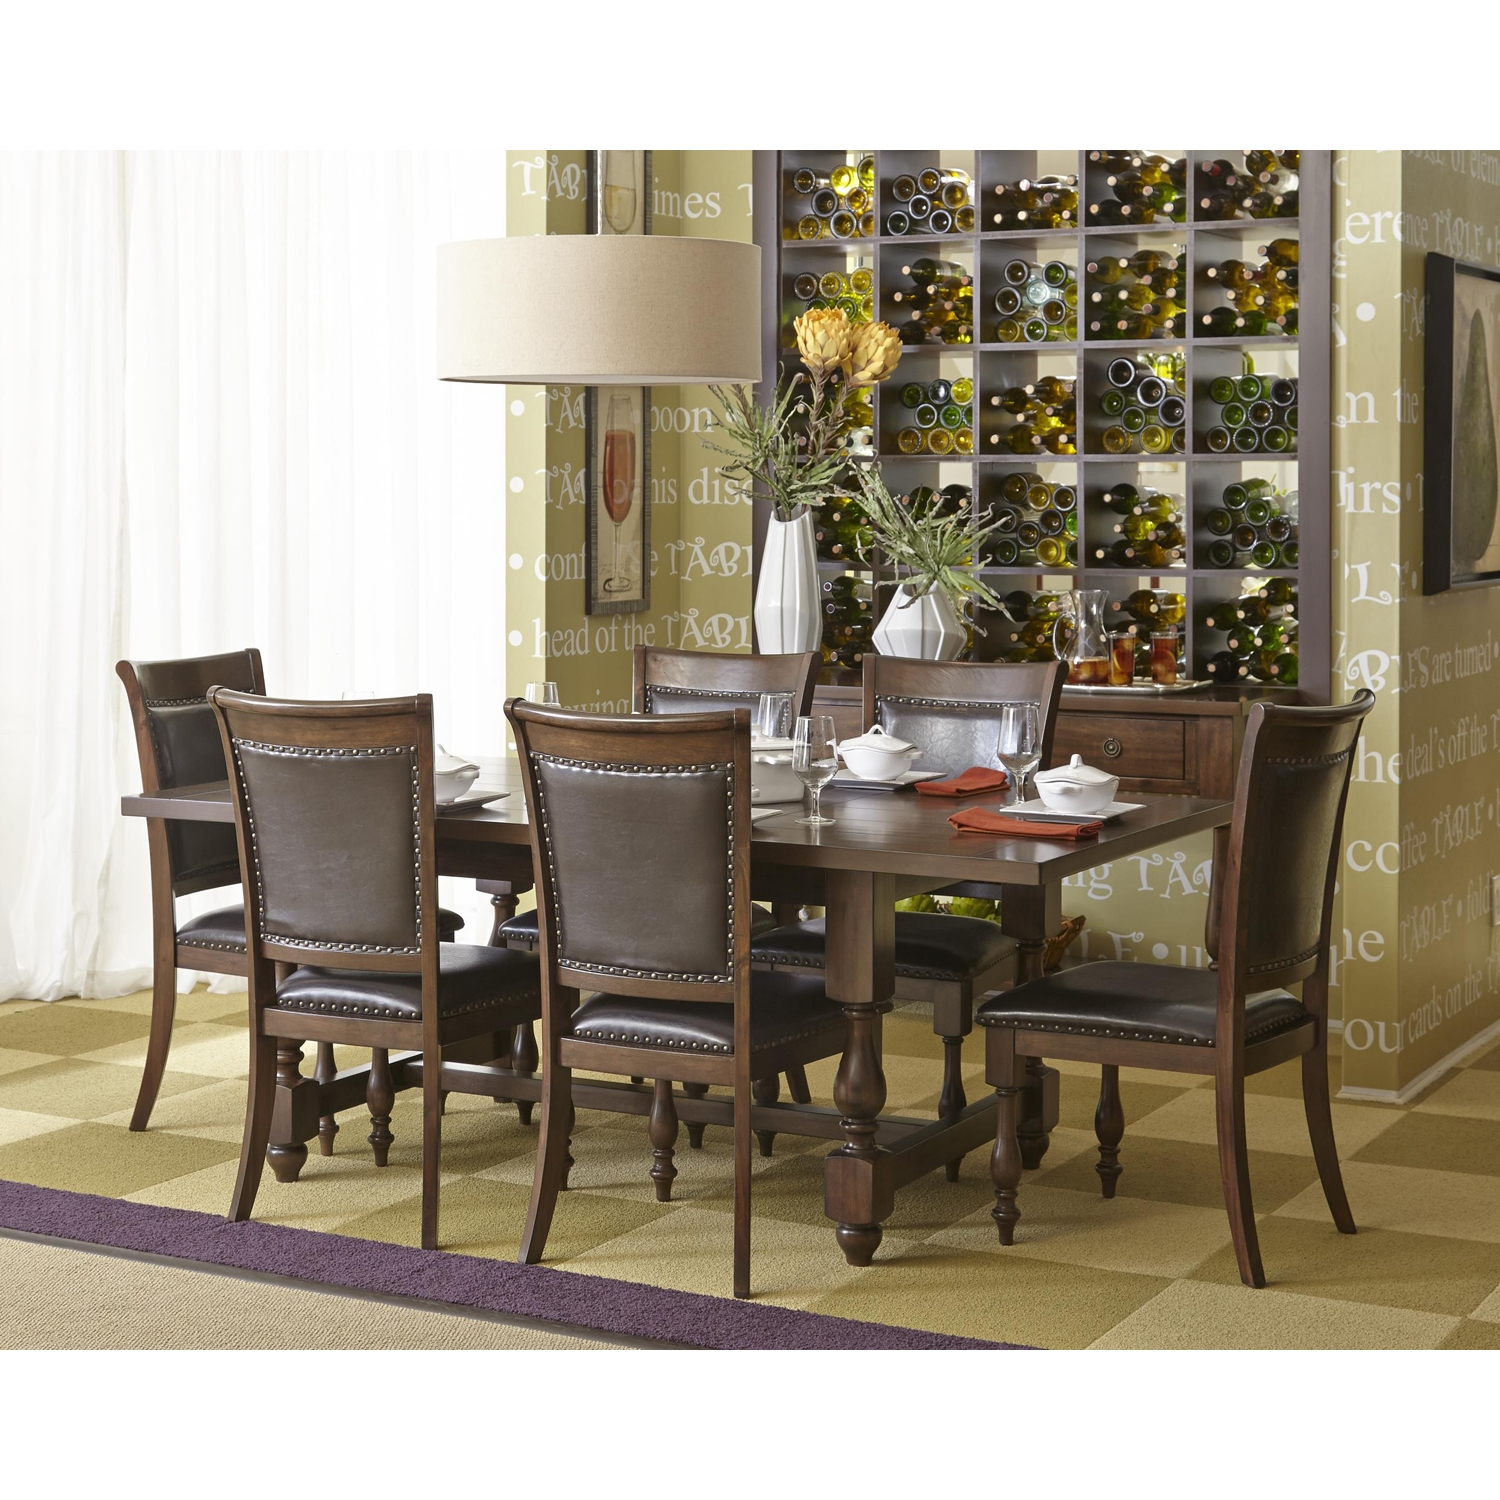 Grand Havana Rectangular Dining Table - Rich Tobacco - JOFR-723-78